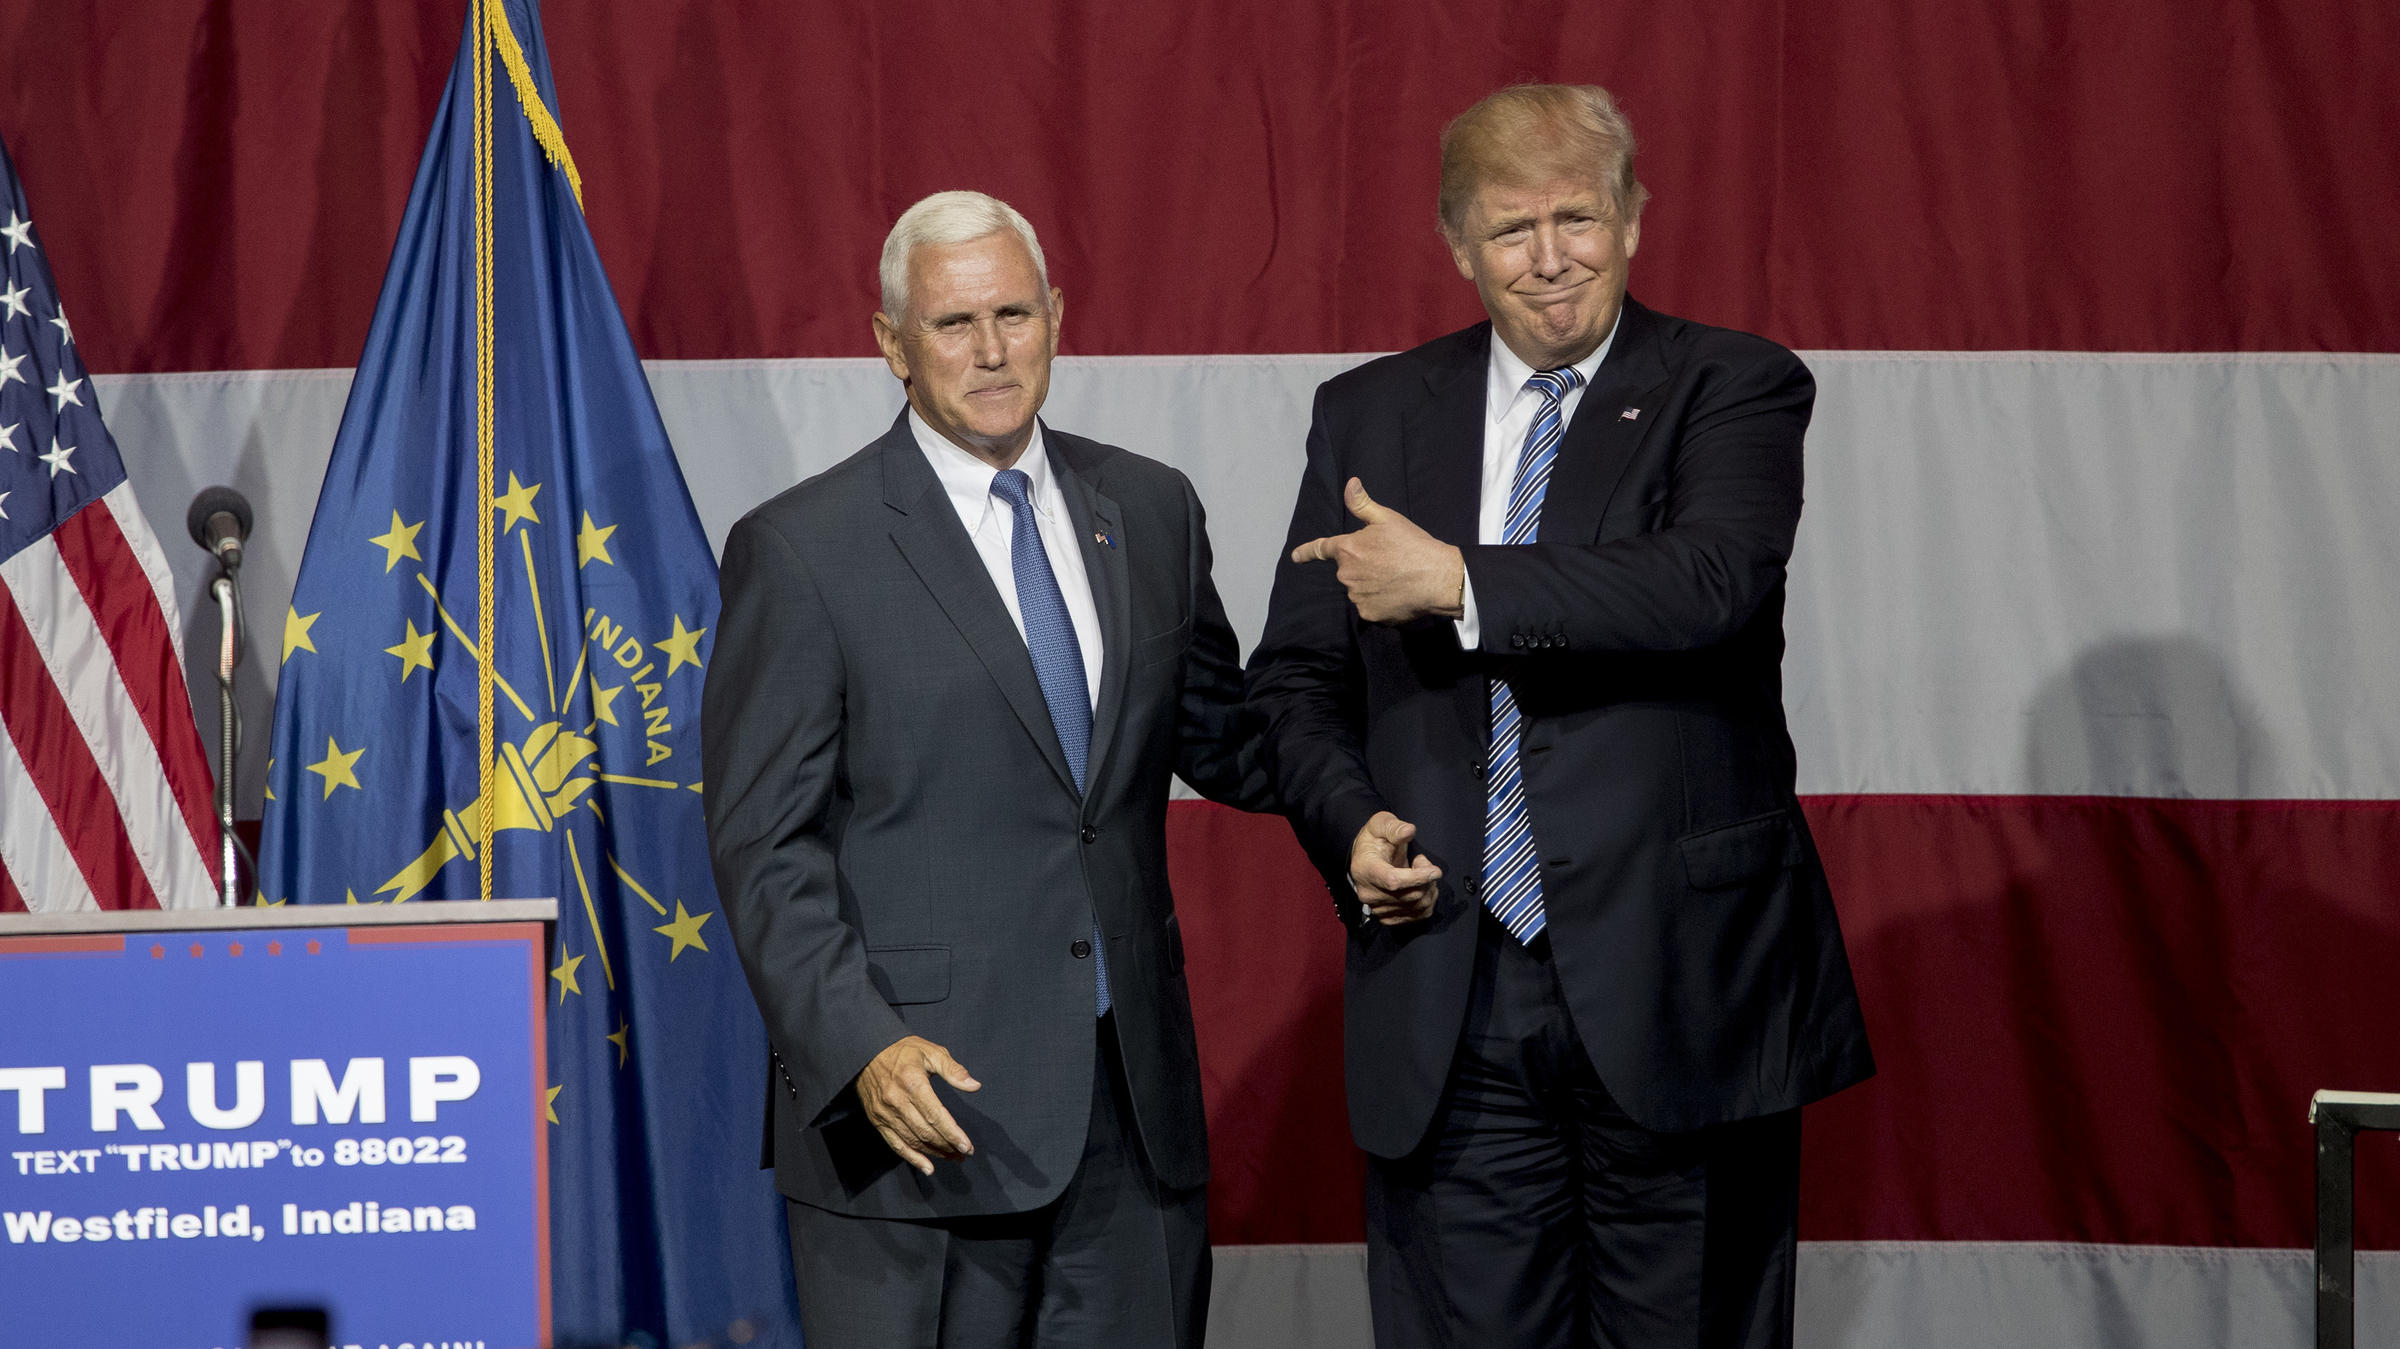 Trump campaign adviser: Mike Pence still VP pick